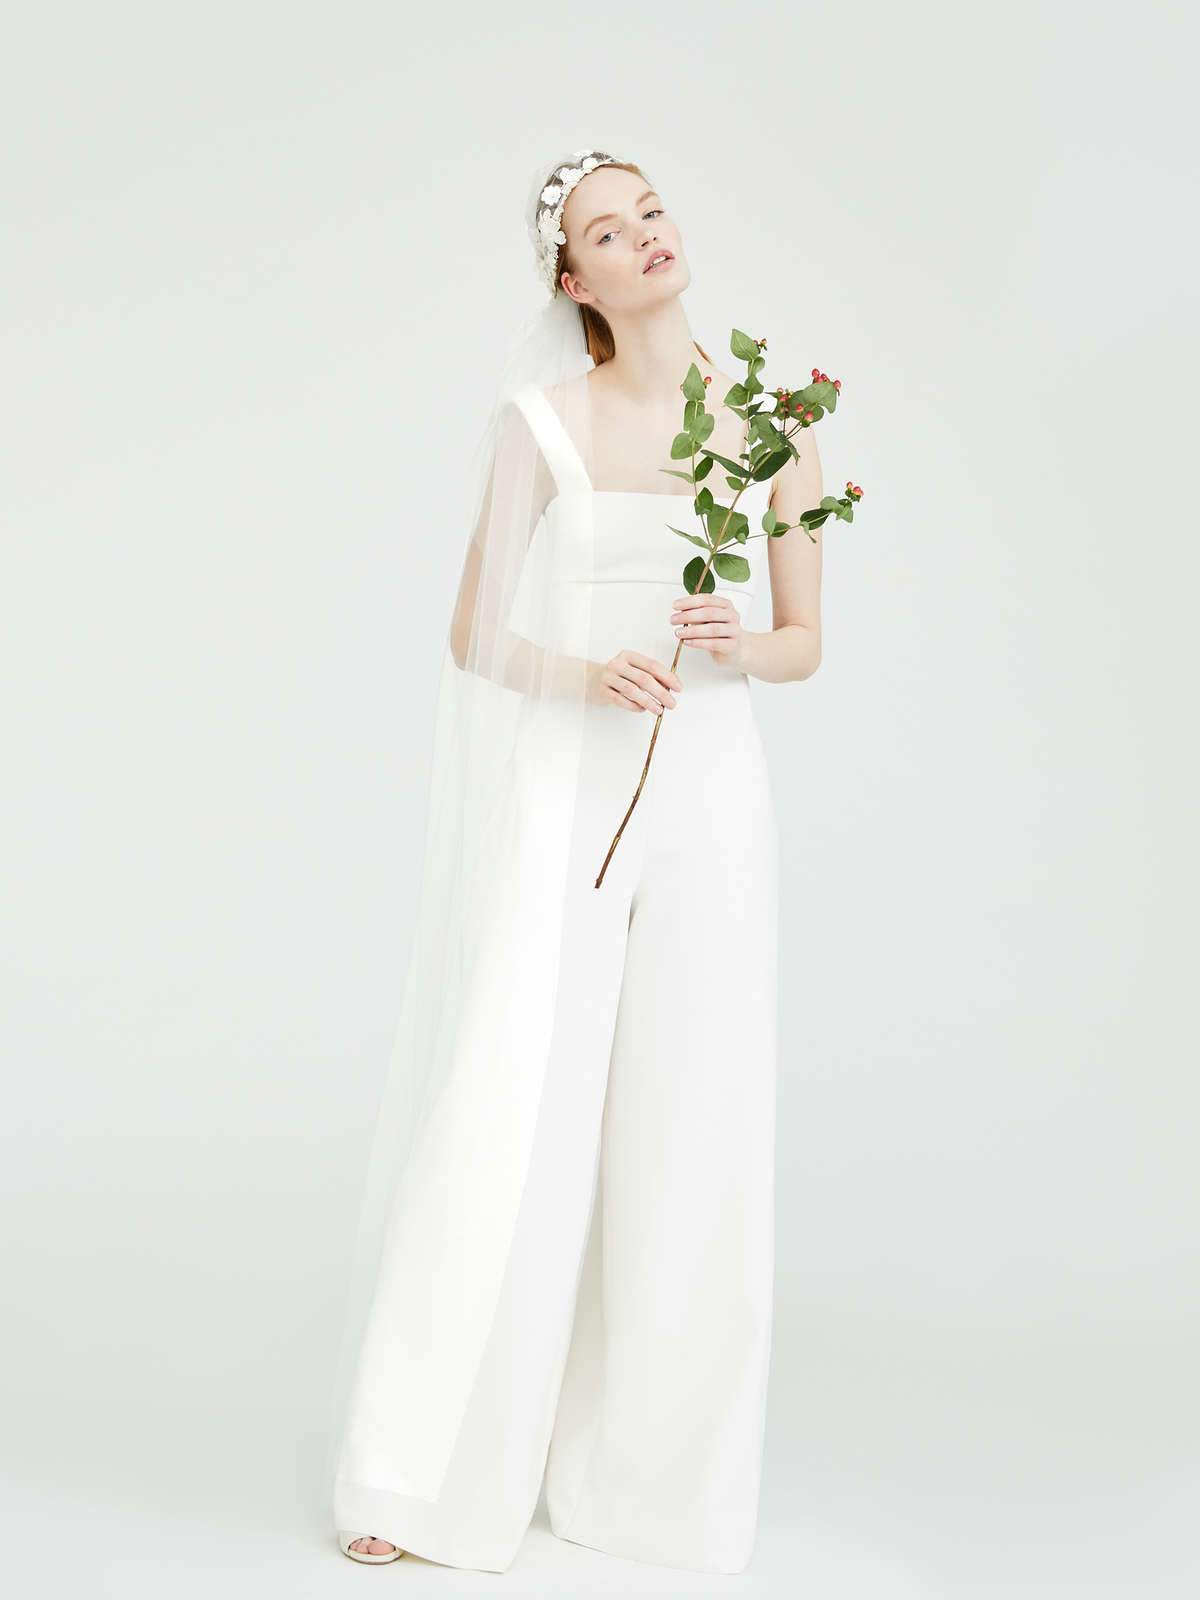 https://it.maxmara.com/p-8246028206001-gelso-bianco